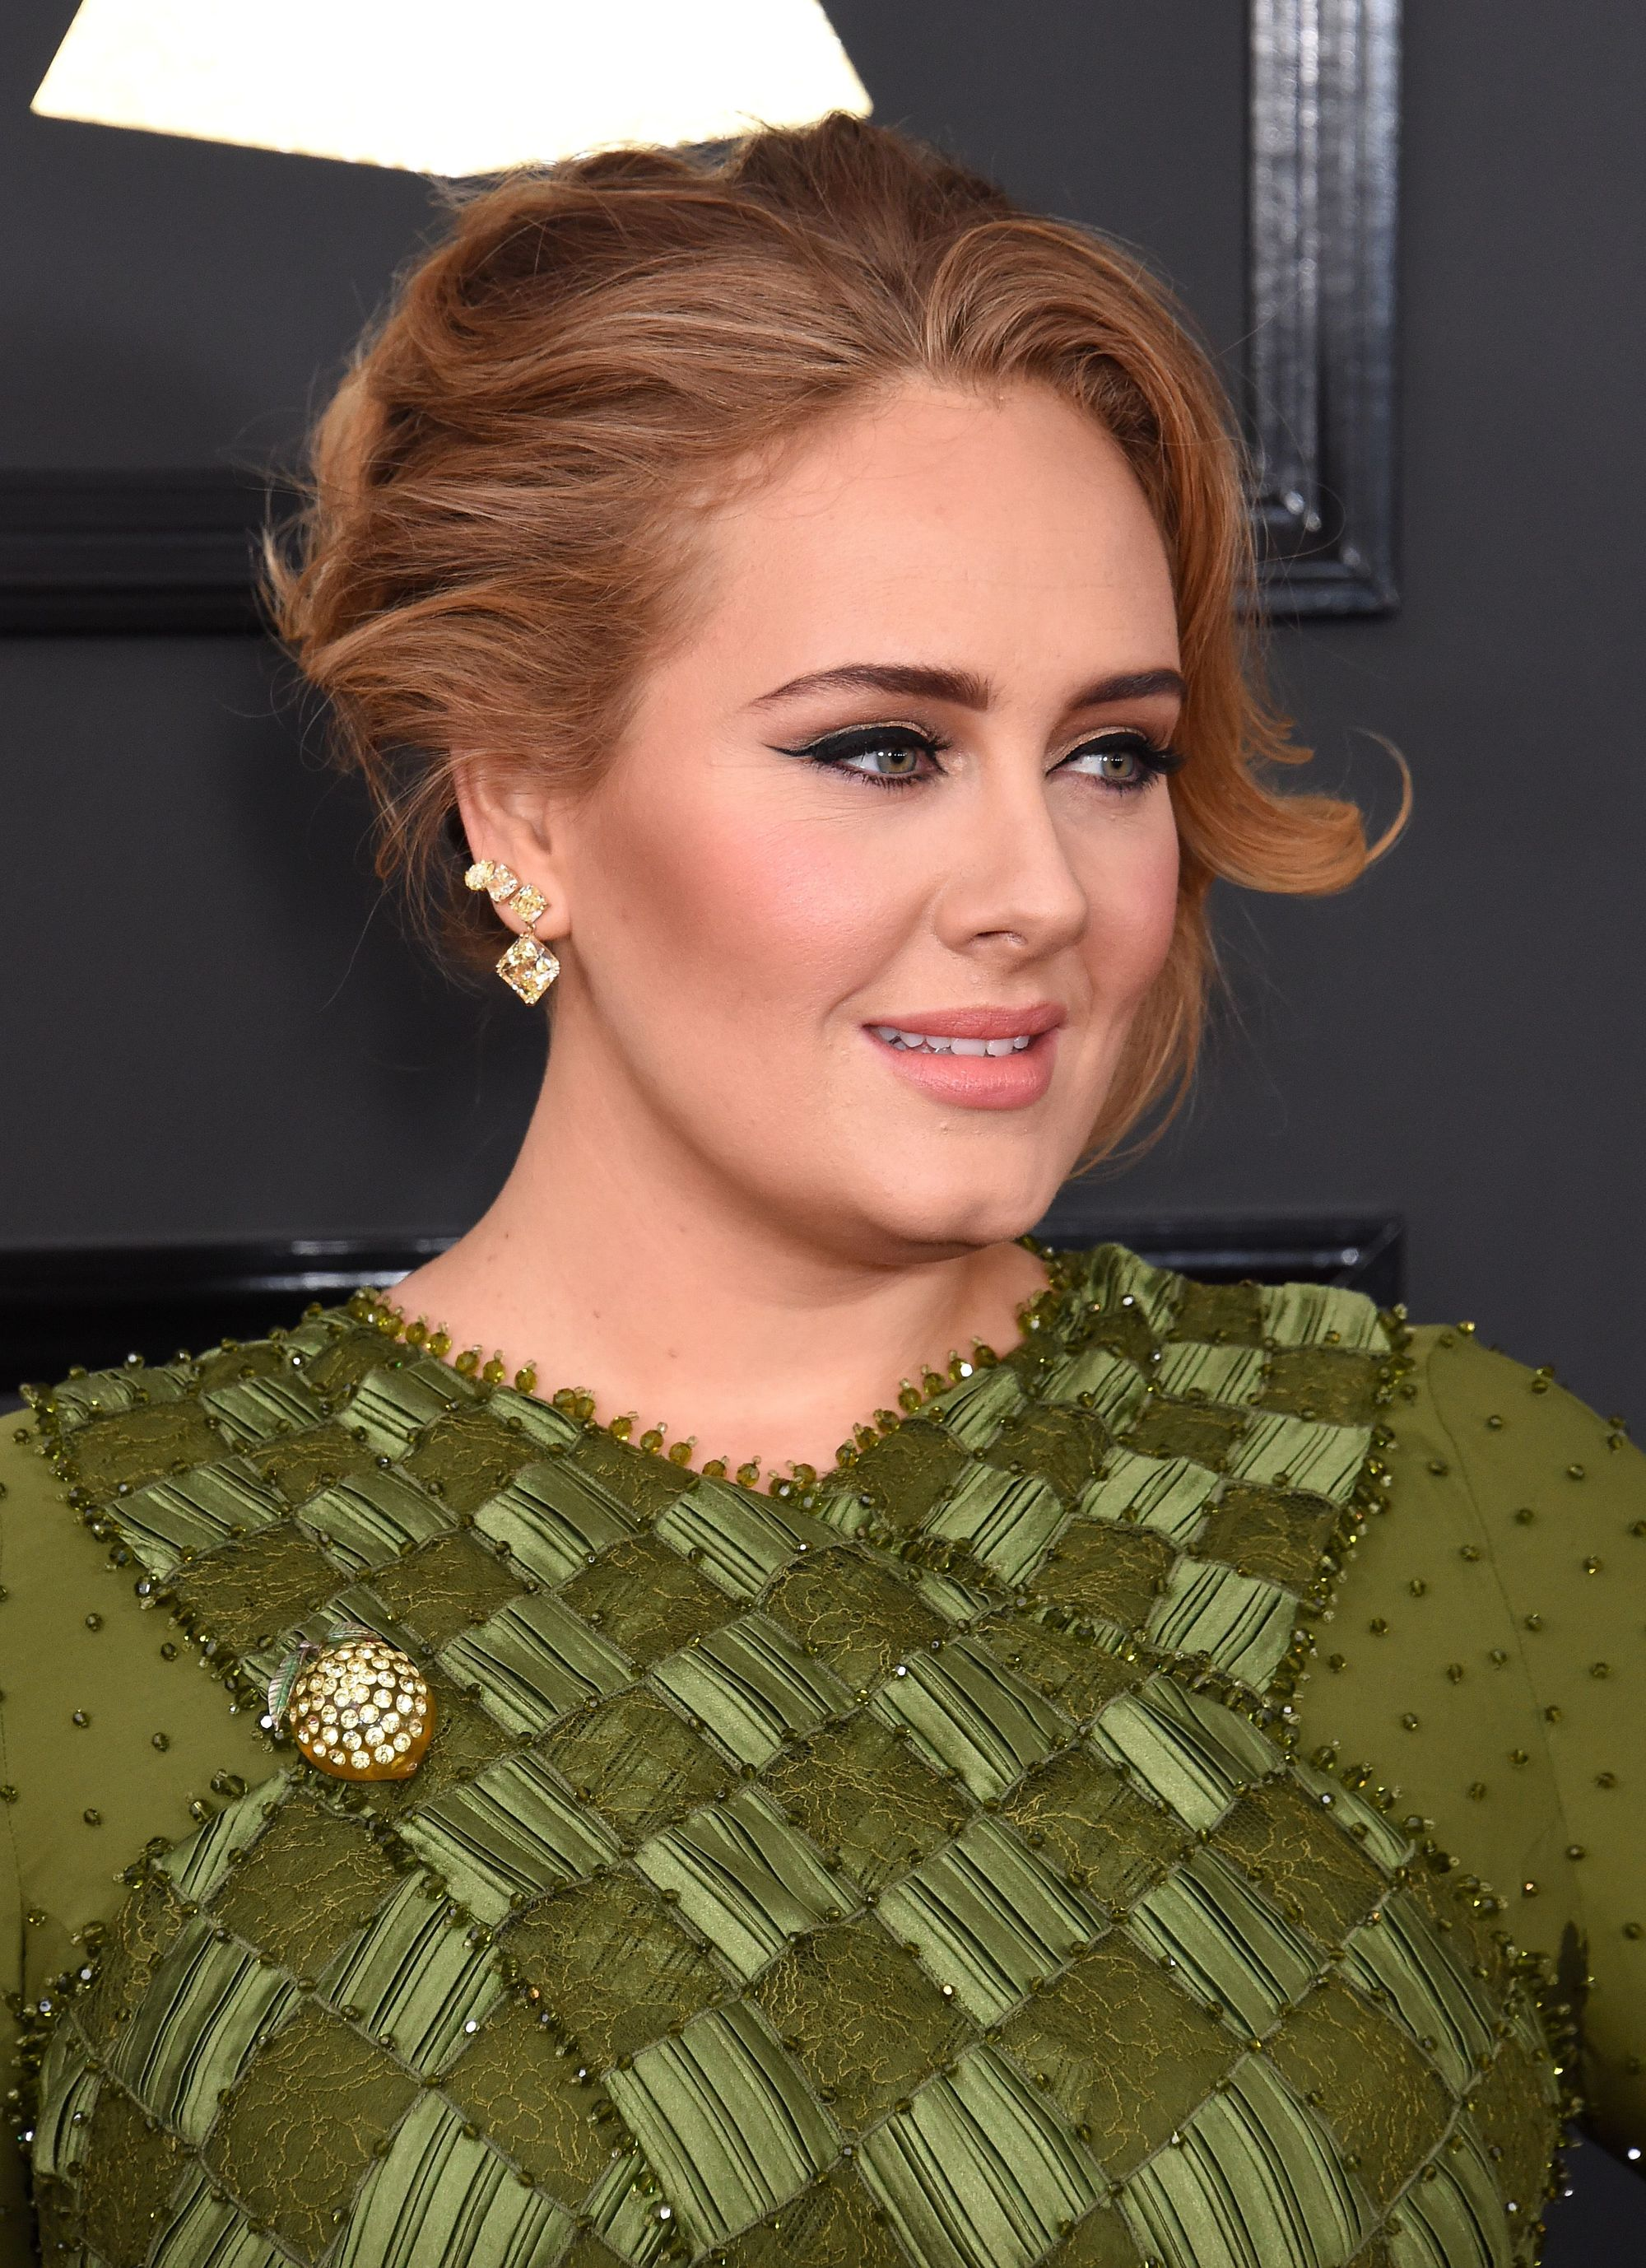 adele wearing a green dress at the grammys 2017 with her hair in an updo